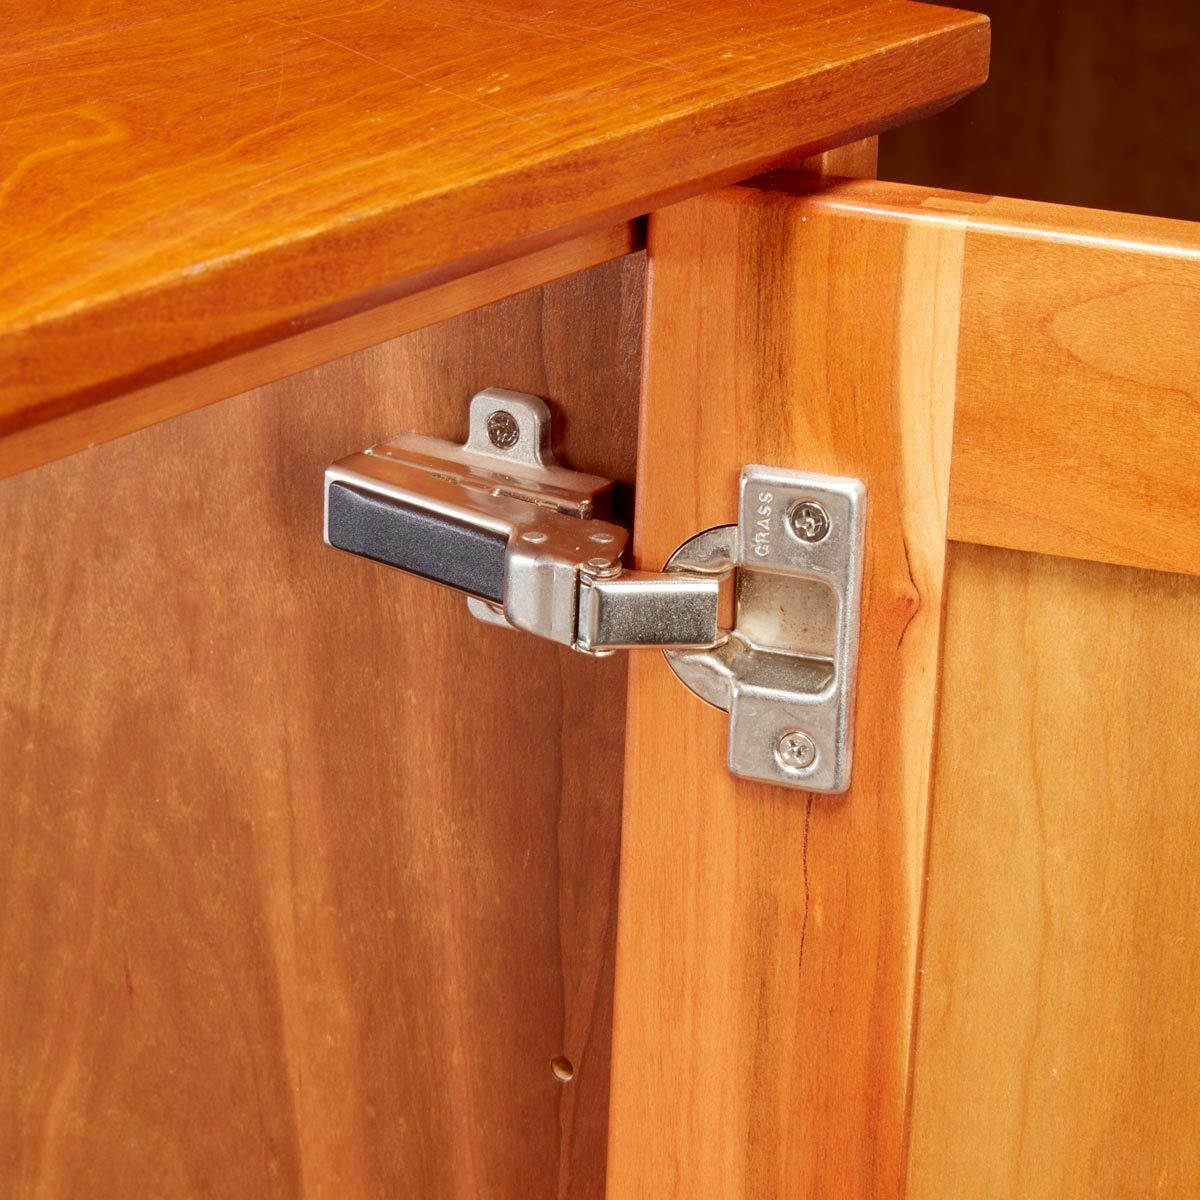 3 Reasons to Love Euro Hinges